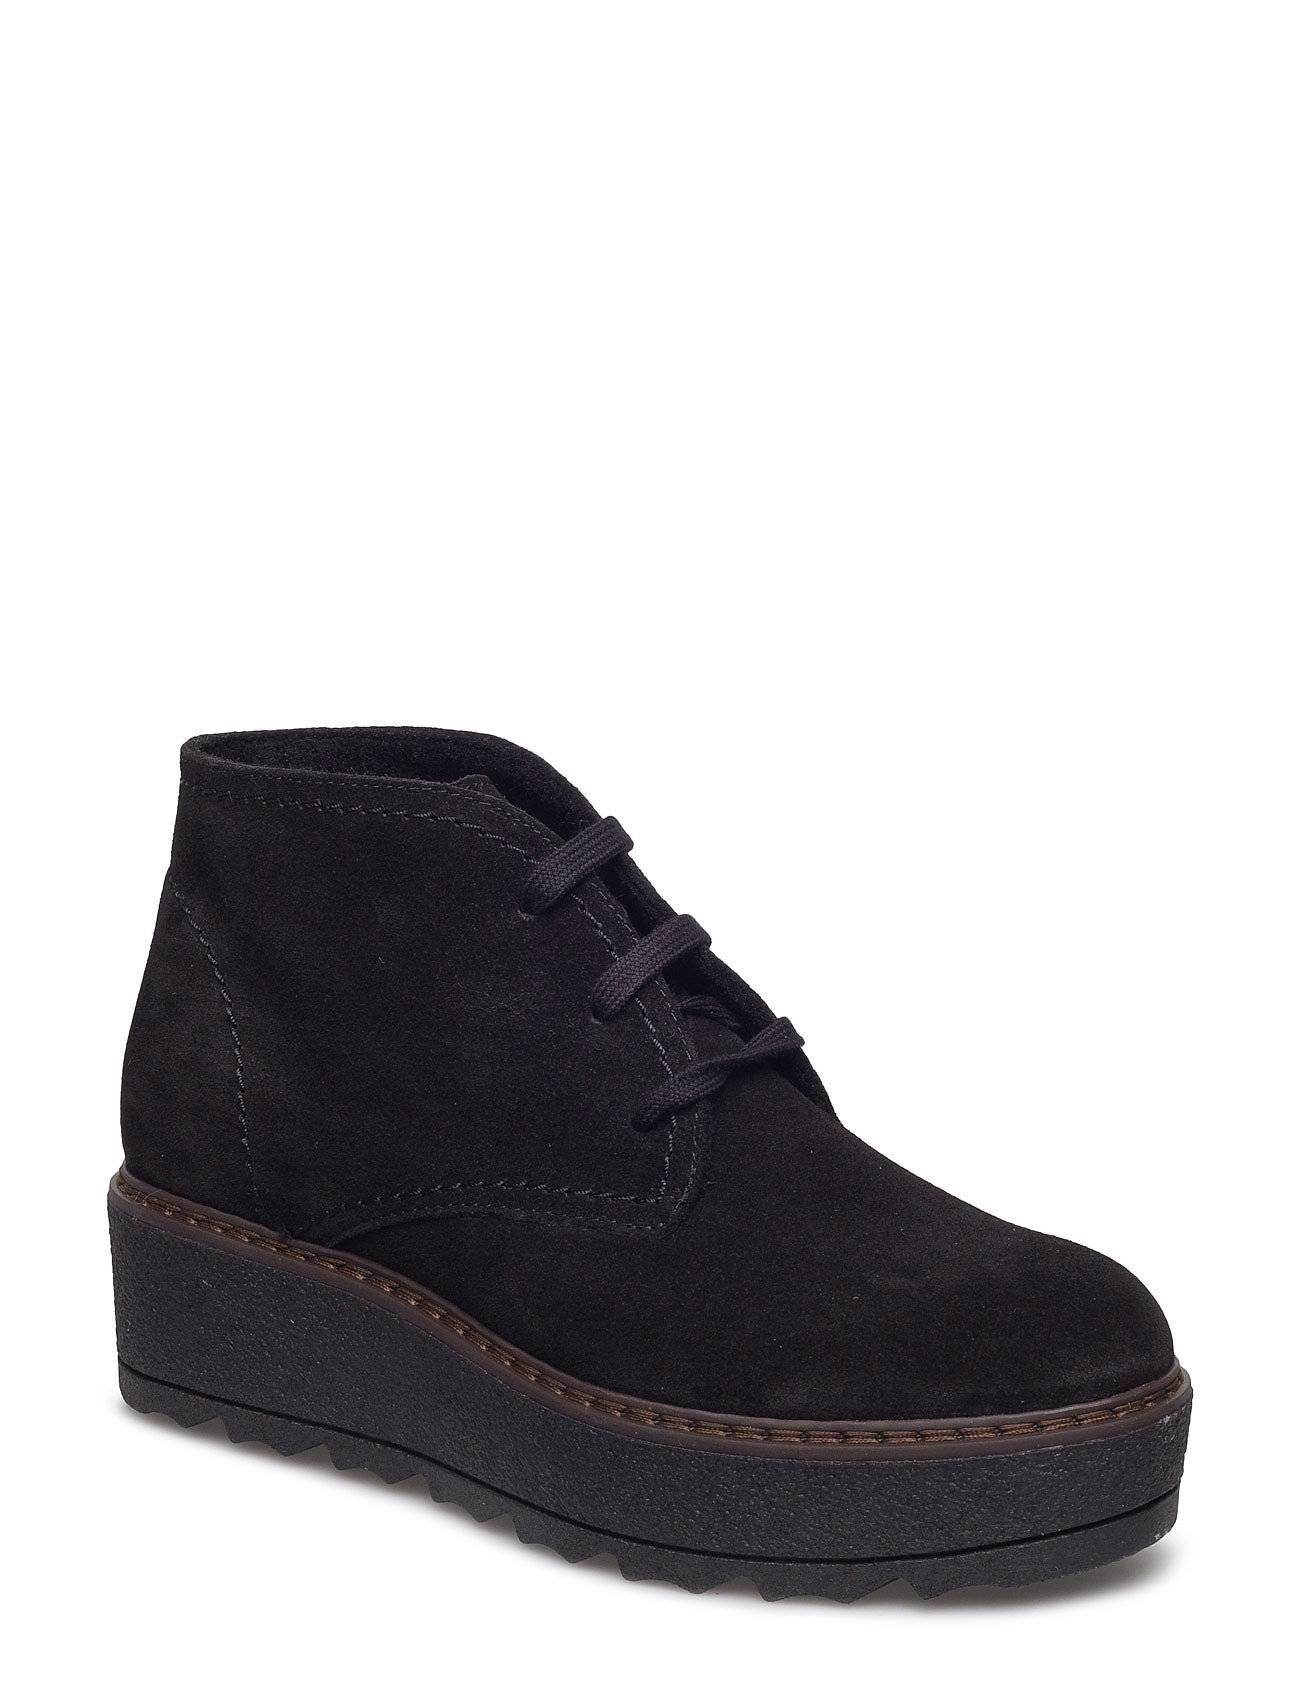 Ilse Jacobsen Suede Ankle Boot